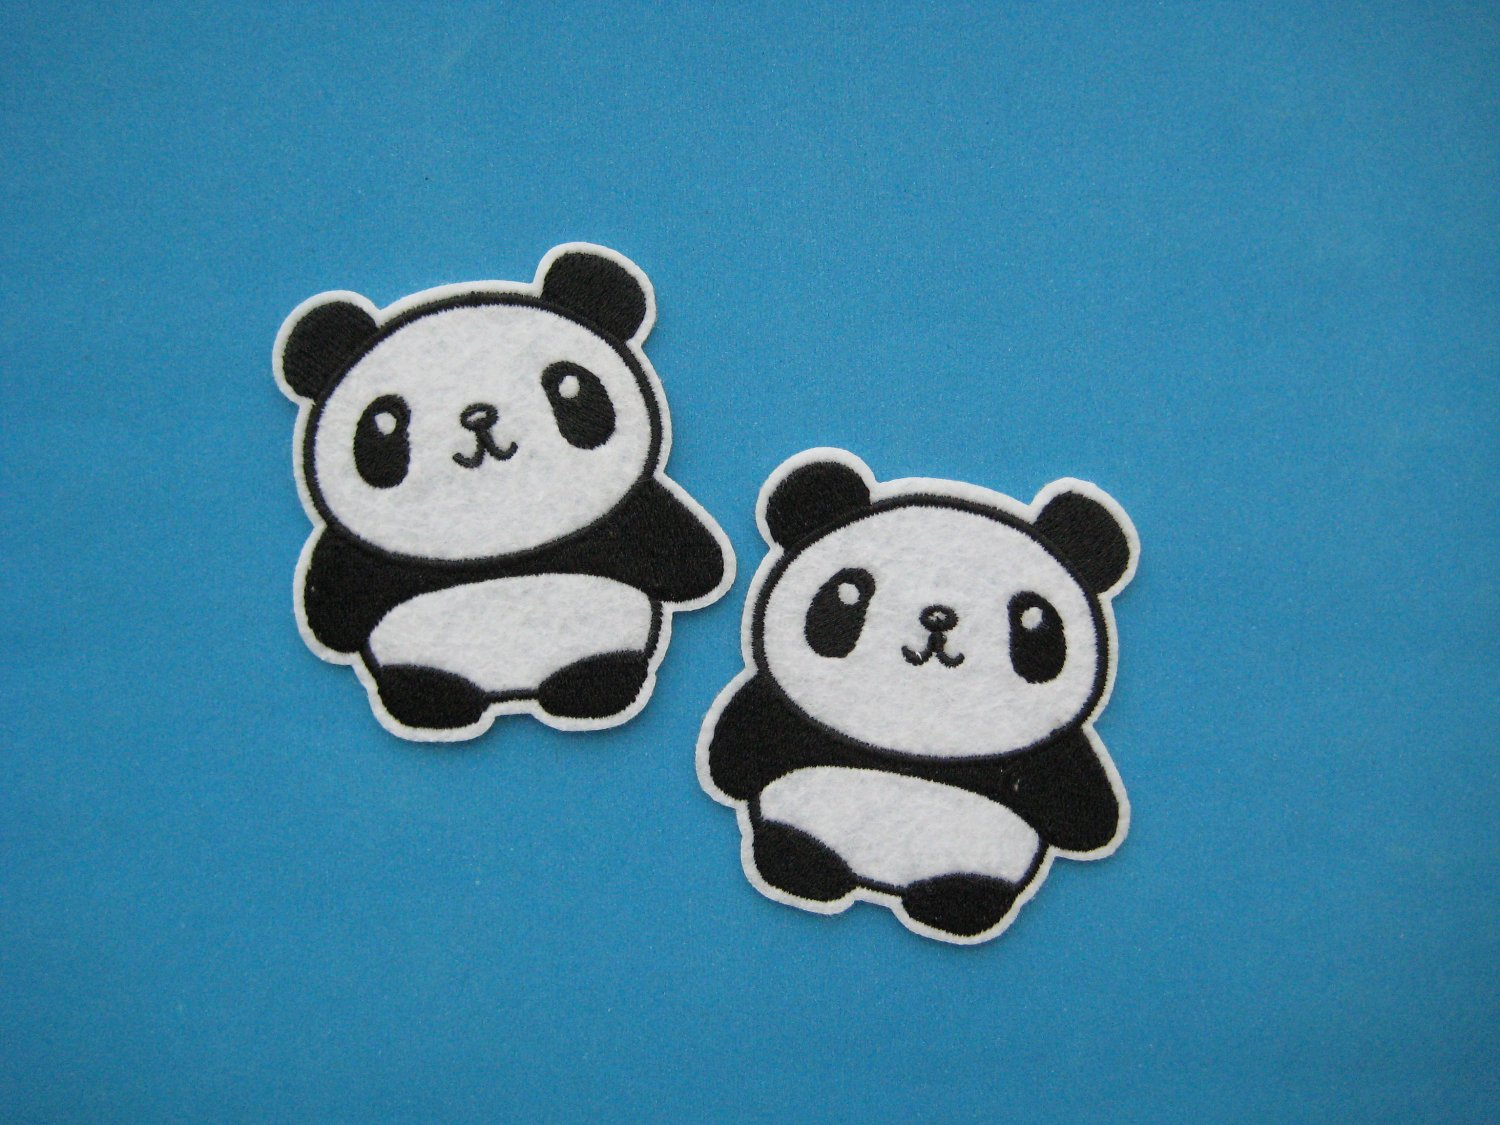 2 pcs Iron-on/ sew-on embroidered patch Lovely Giant Panda bear 2.5 inch